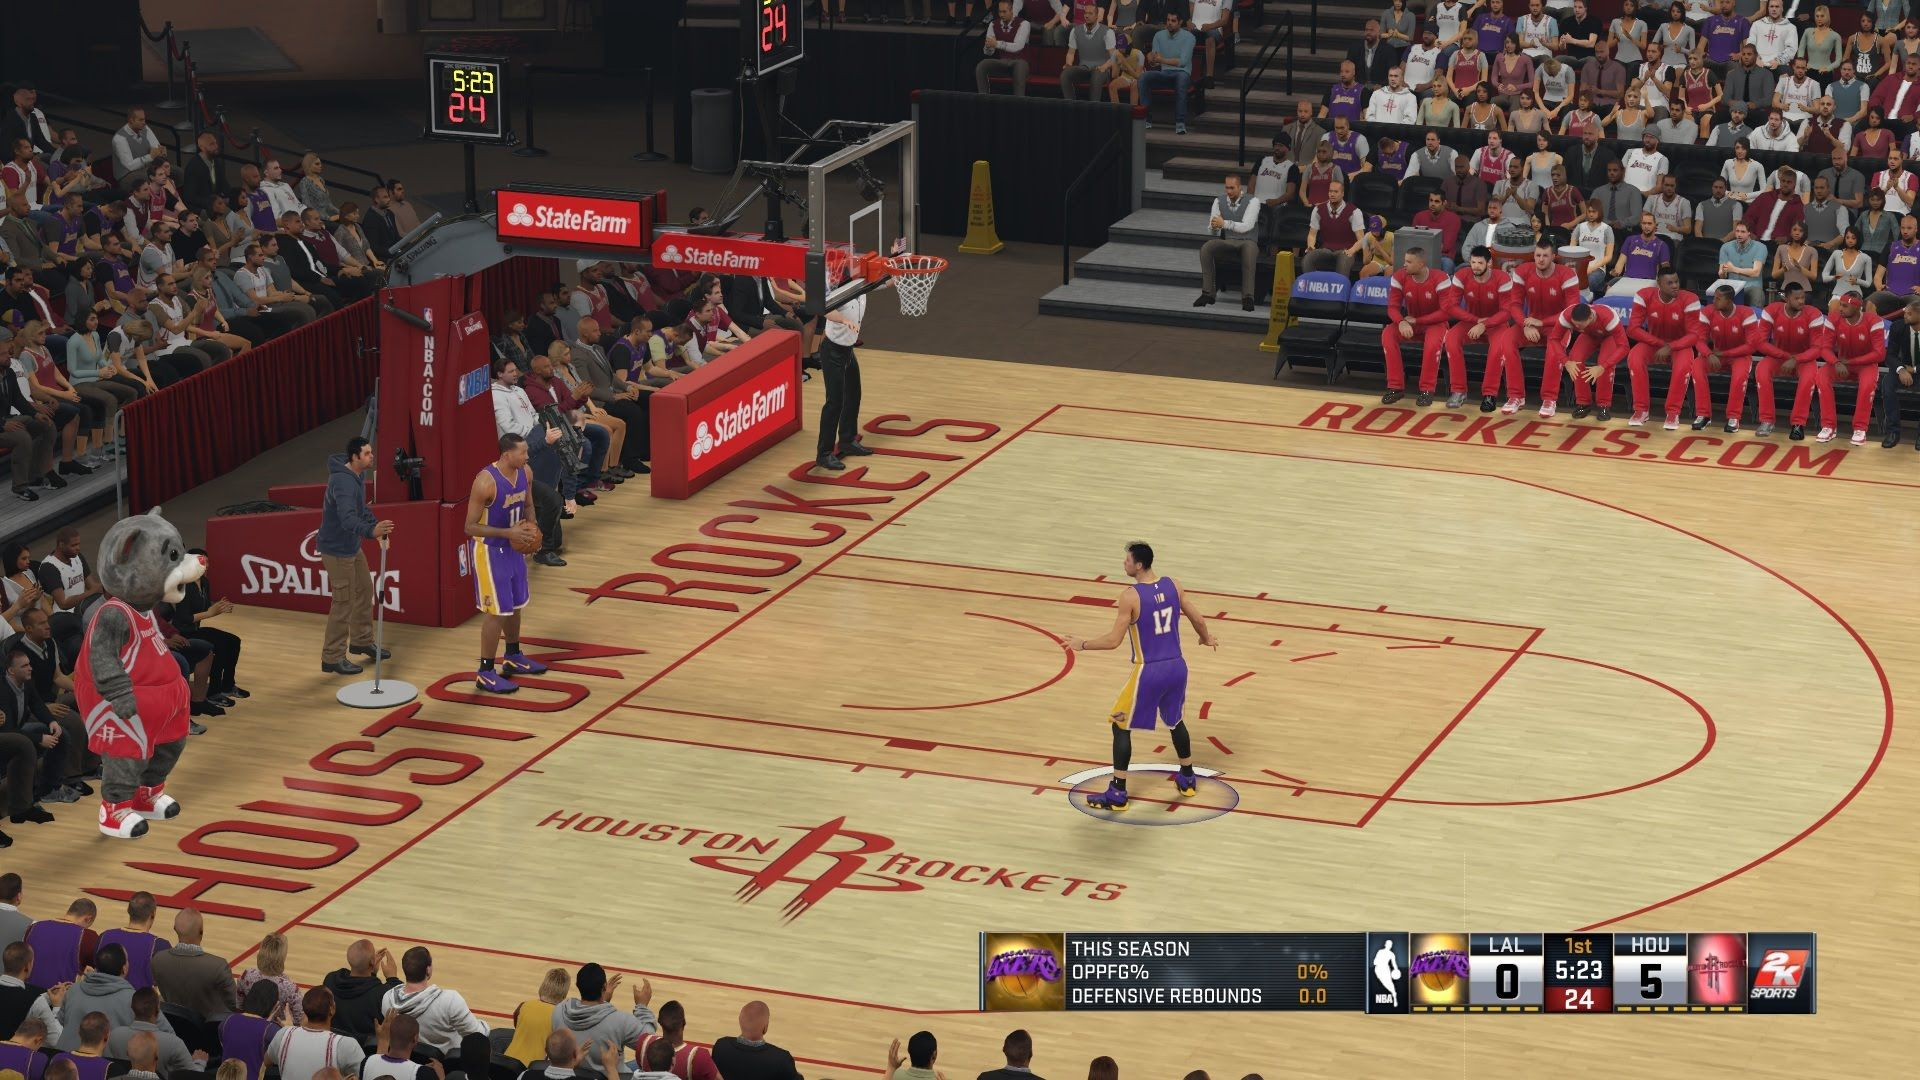 nba 2k16 free download pc game full version